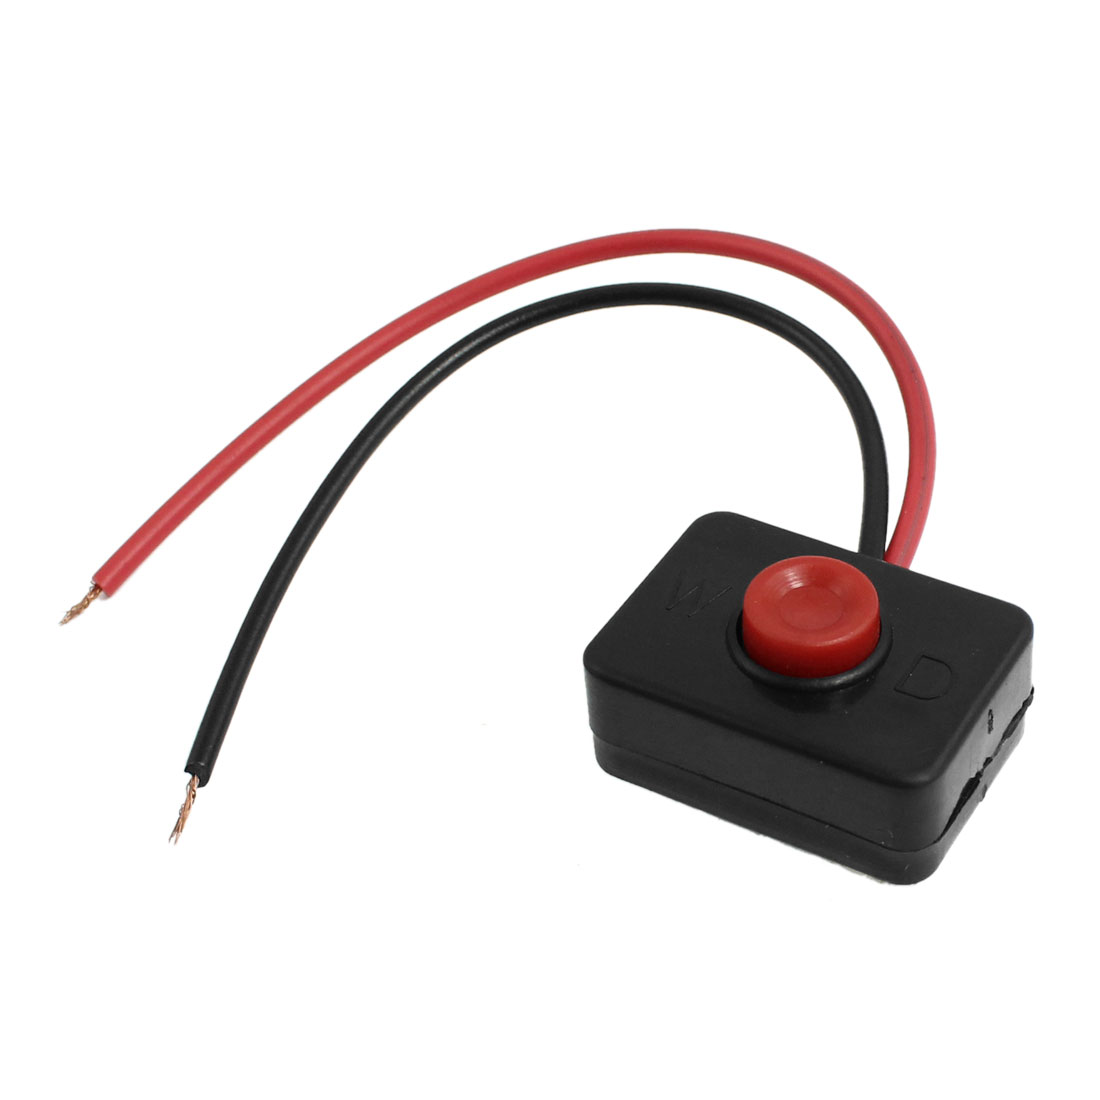 DC 12V 2A Adhesive Base Push Button Momentary Action Wired Switch for Car